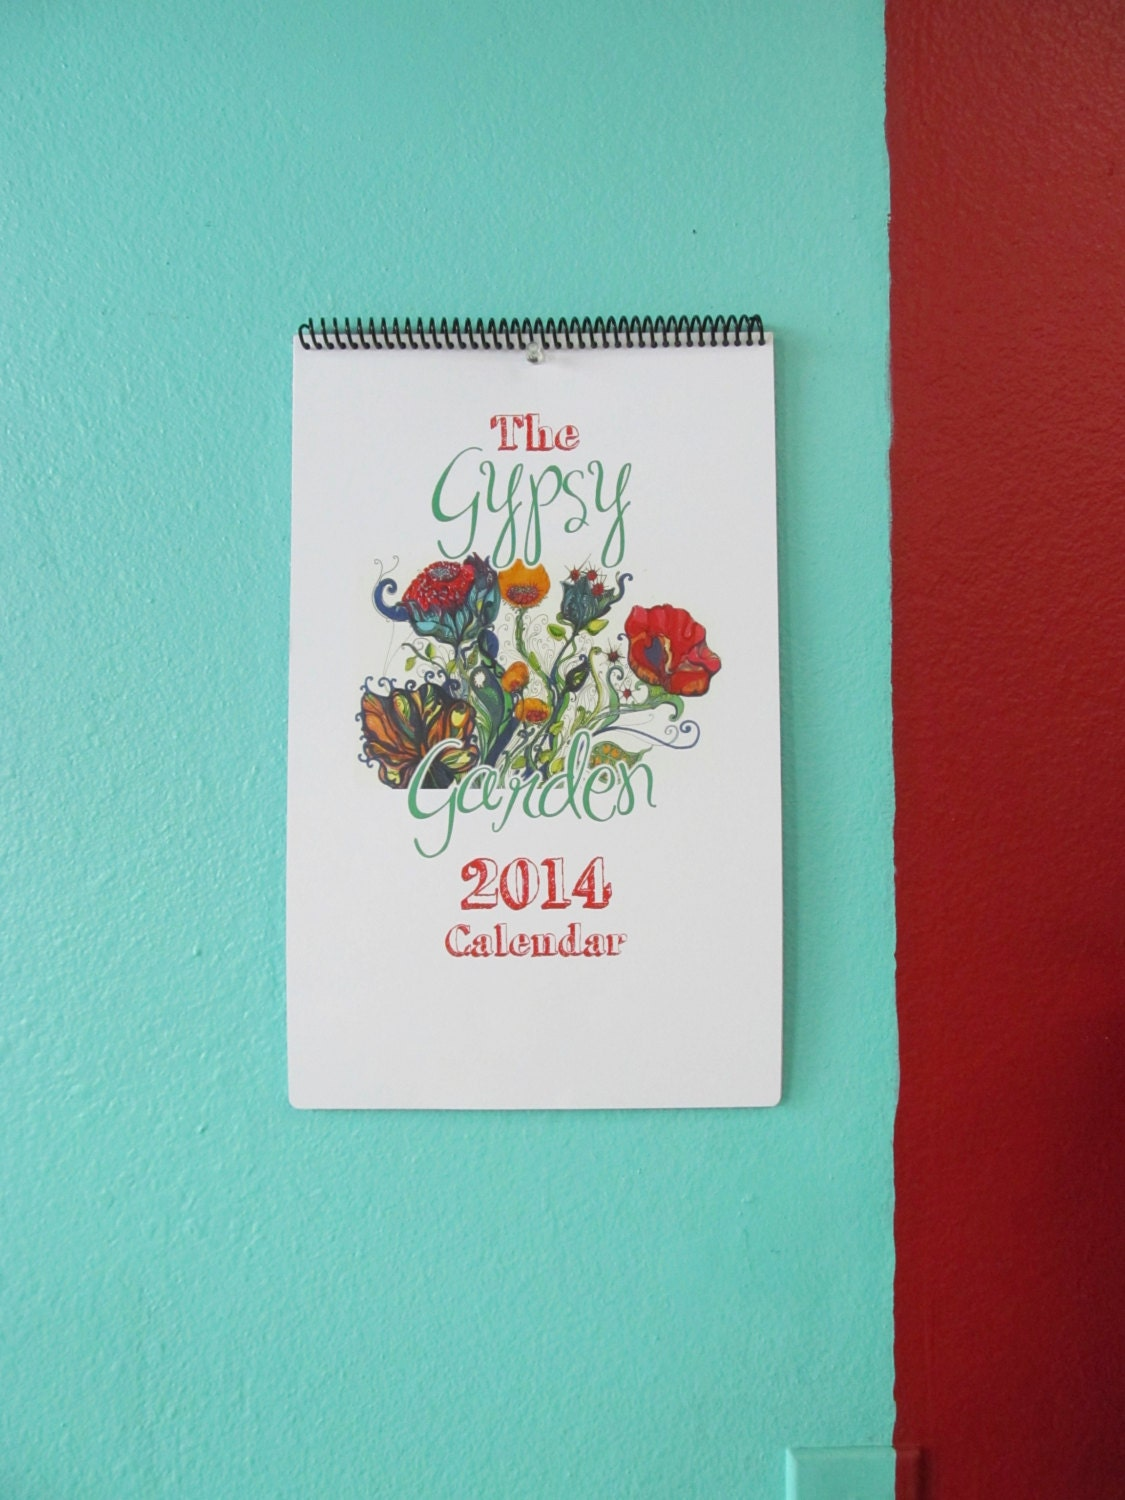 Popular items for 2014 wall calendar on Etsy